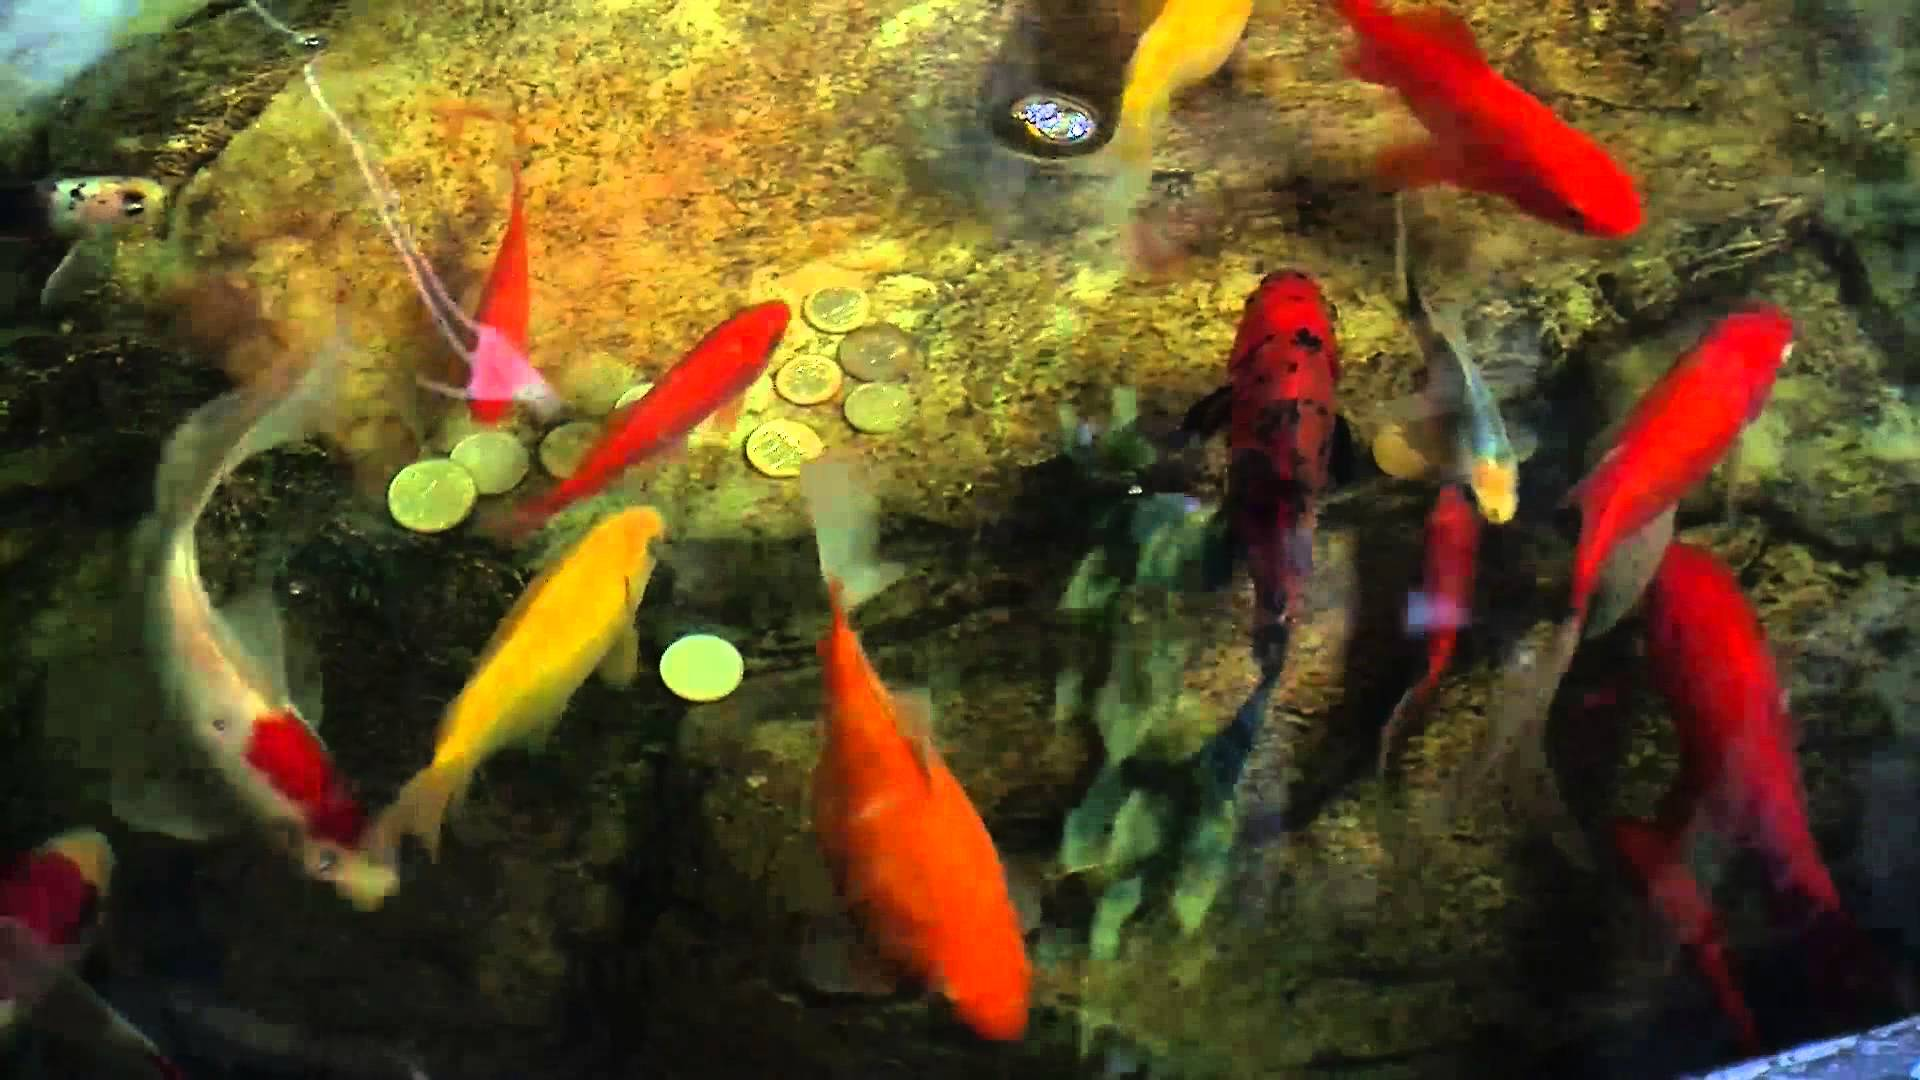 The Golden Fish - YouTube